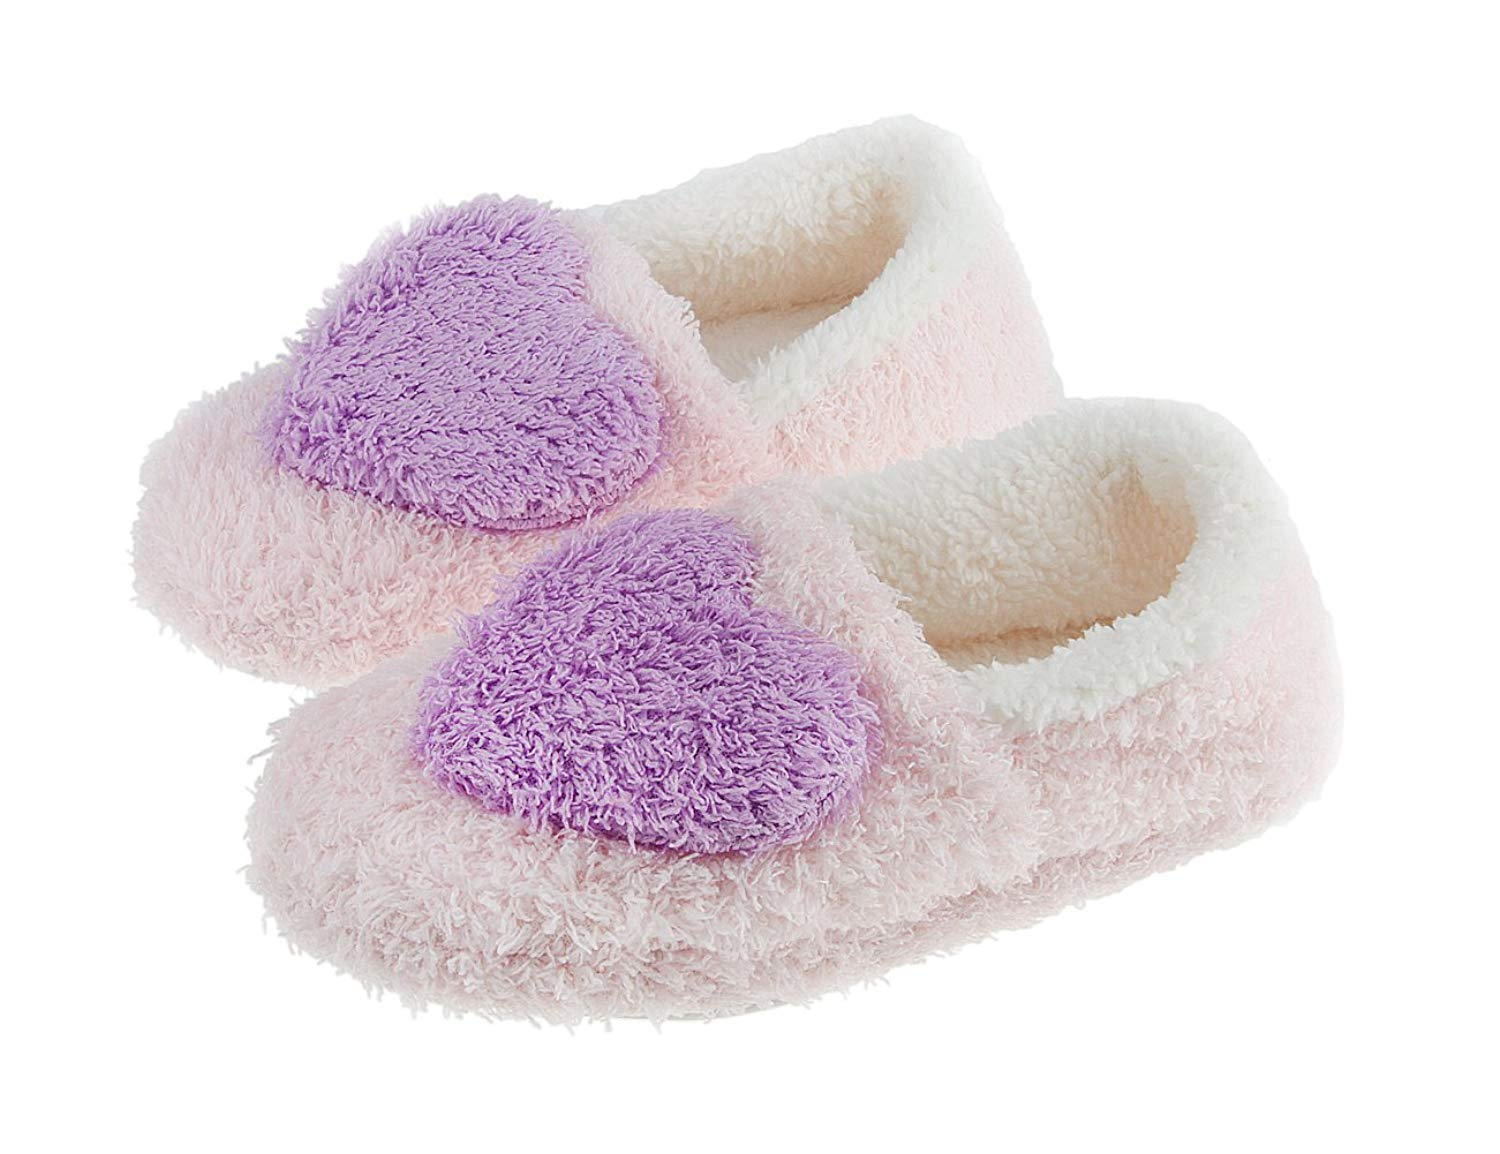 Fakeface Womens Ladies Girls Super Cosy Coral Fleece Terry Warm Mules Slipper Lovely Heart Lightweight Non-Slip Home House Indoor Slip-On Slippers Ankle Boots Shoes